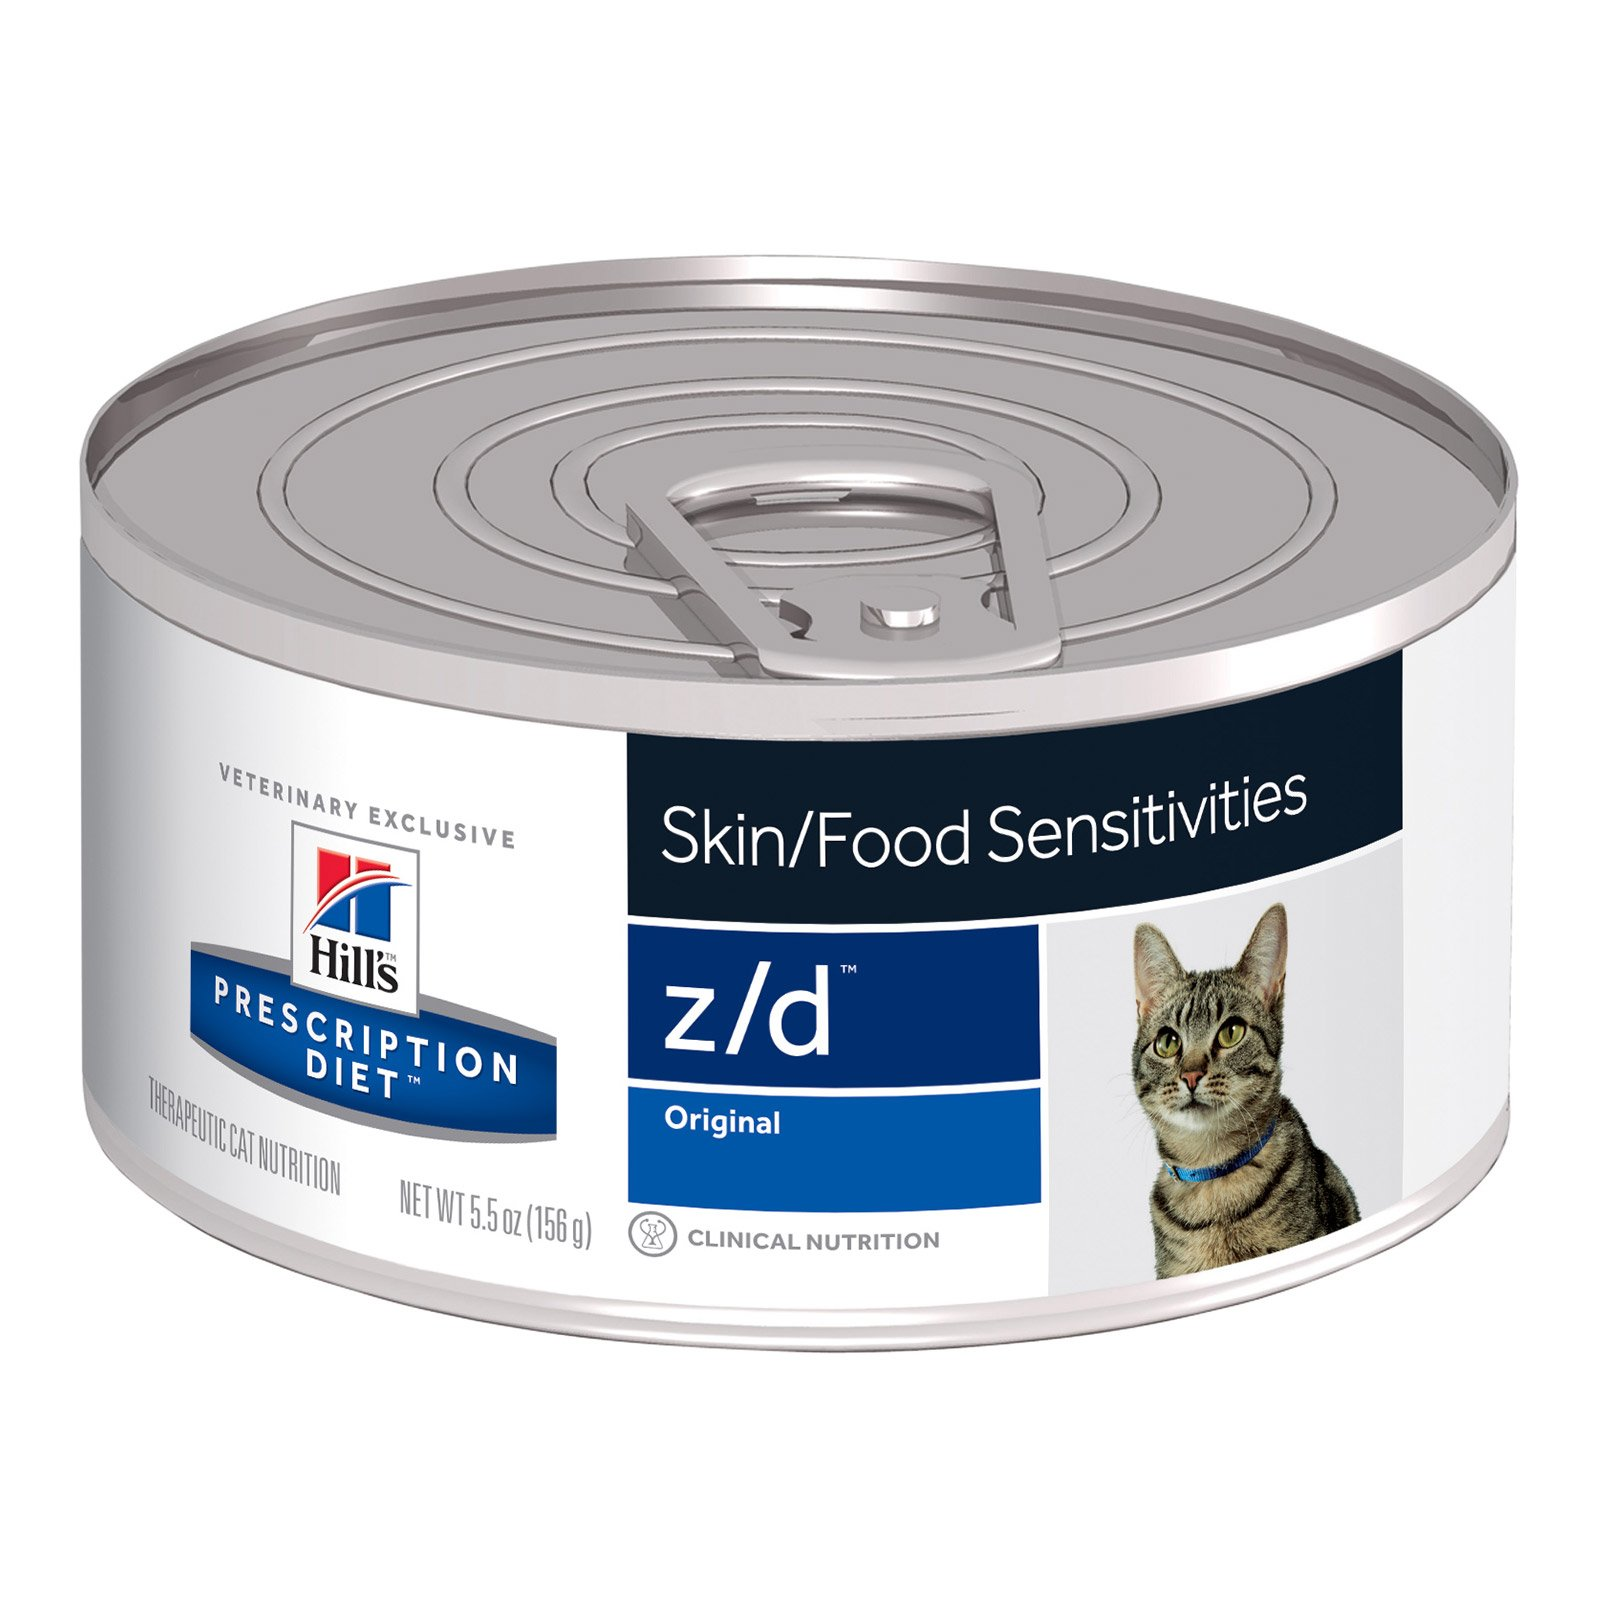 Hill's Prescription Diet z/d Skin/Food Sensitivities Canned Cat Food